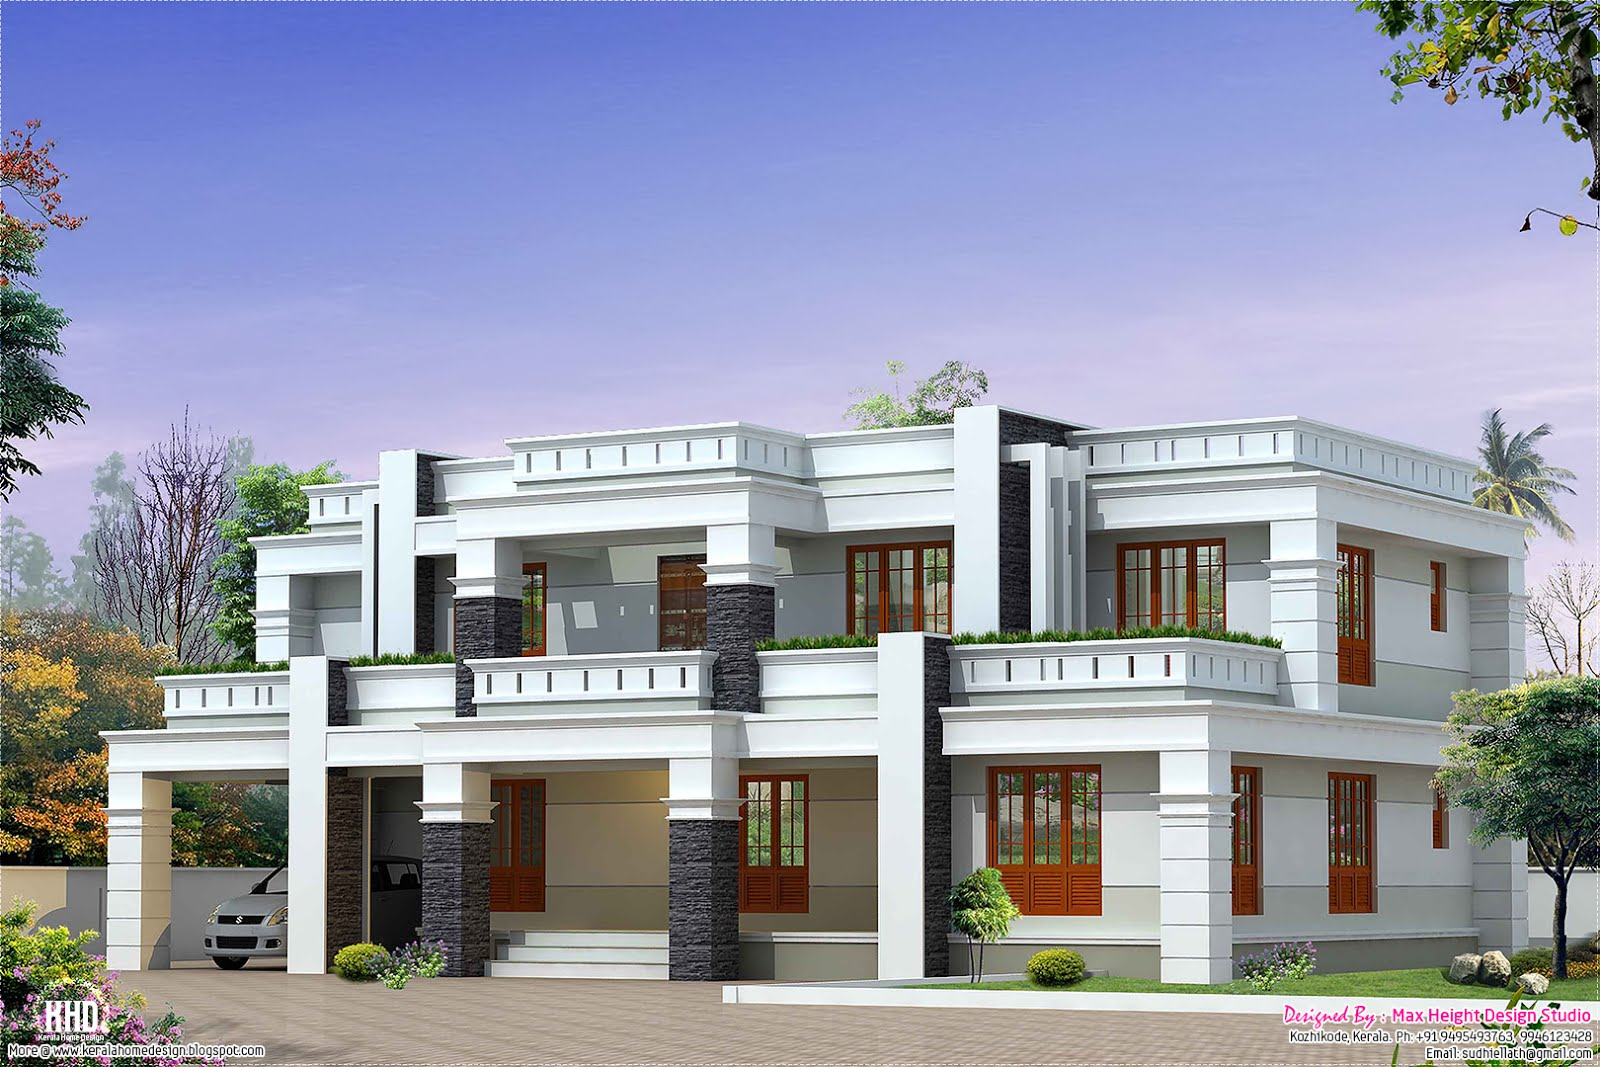 House Plans And Design Modern House Designs With Flat Roof